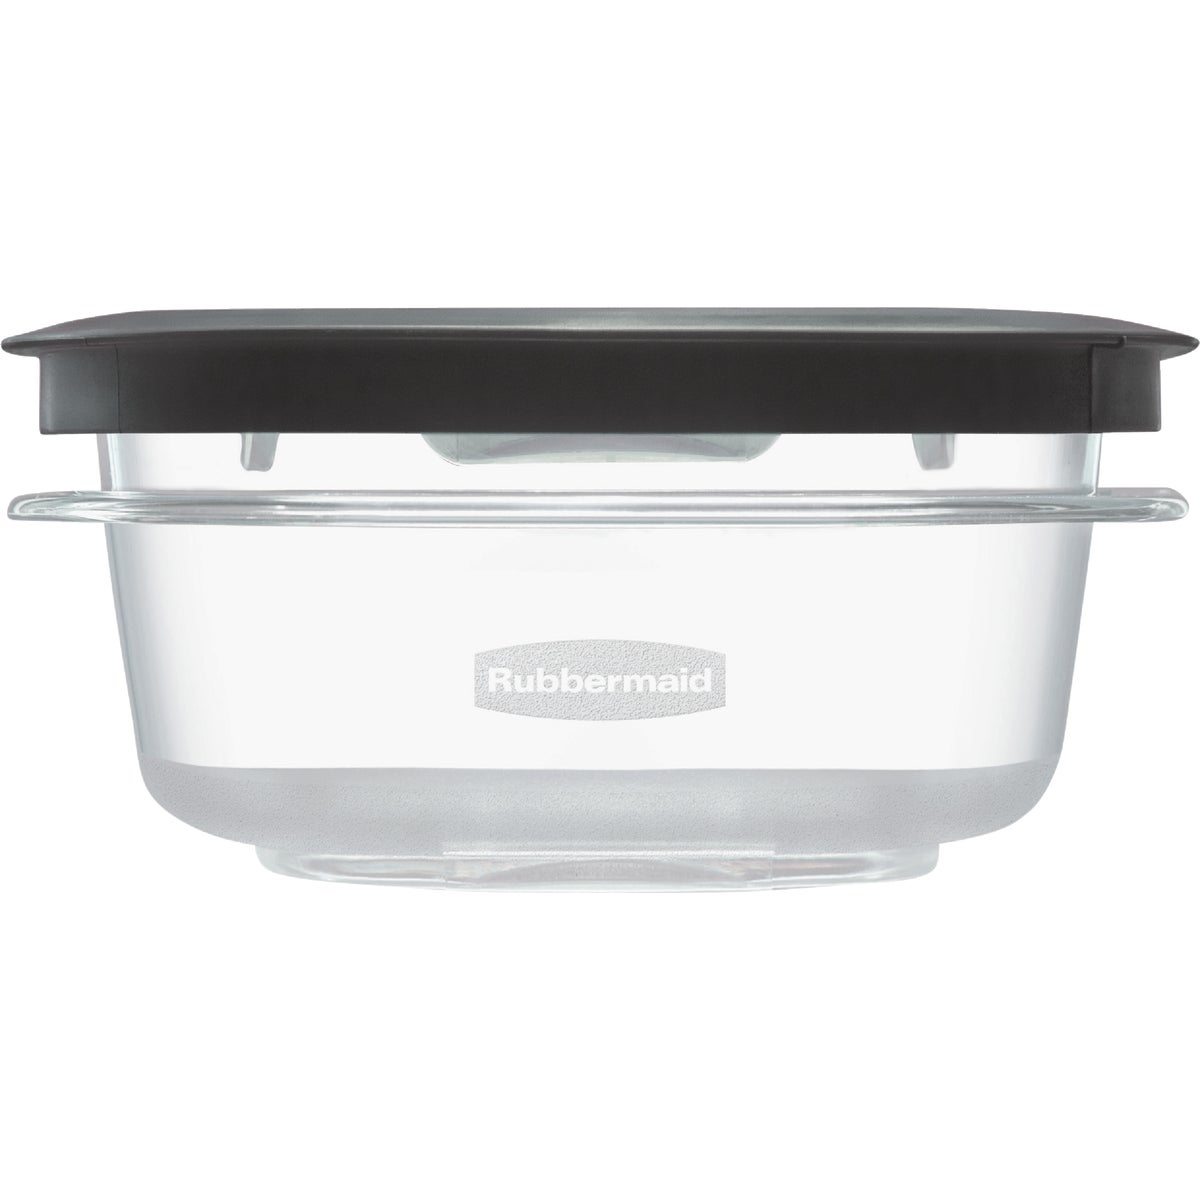 1.25C PREMIER CONTAINER - FG7H74TRCHILI by Rubbermaid Home